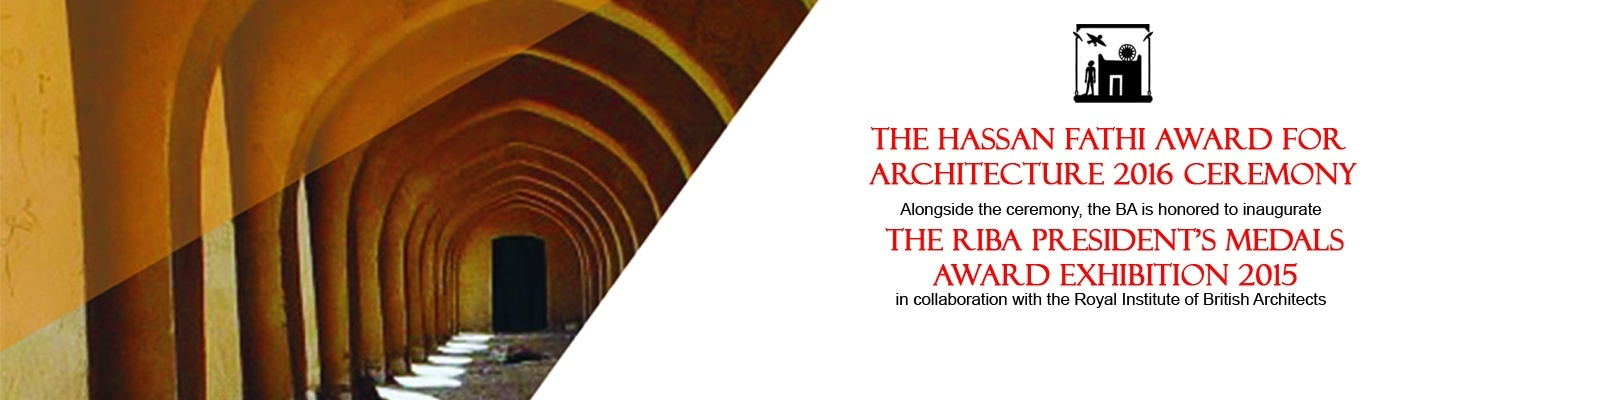 The 2016 Hassan Fathi Award Ceremony and the 2015 RIBA Award Exhibition